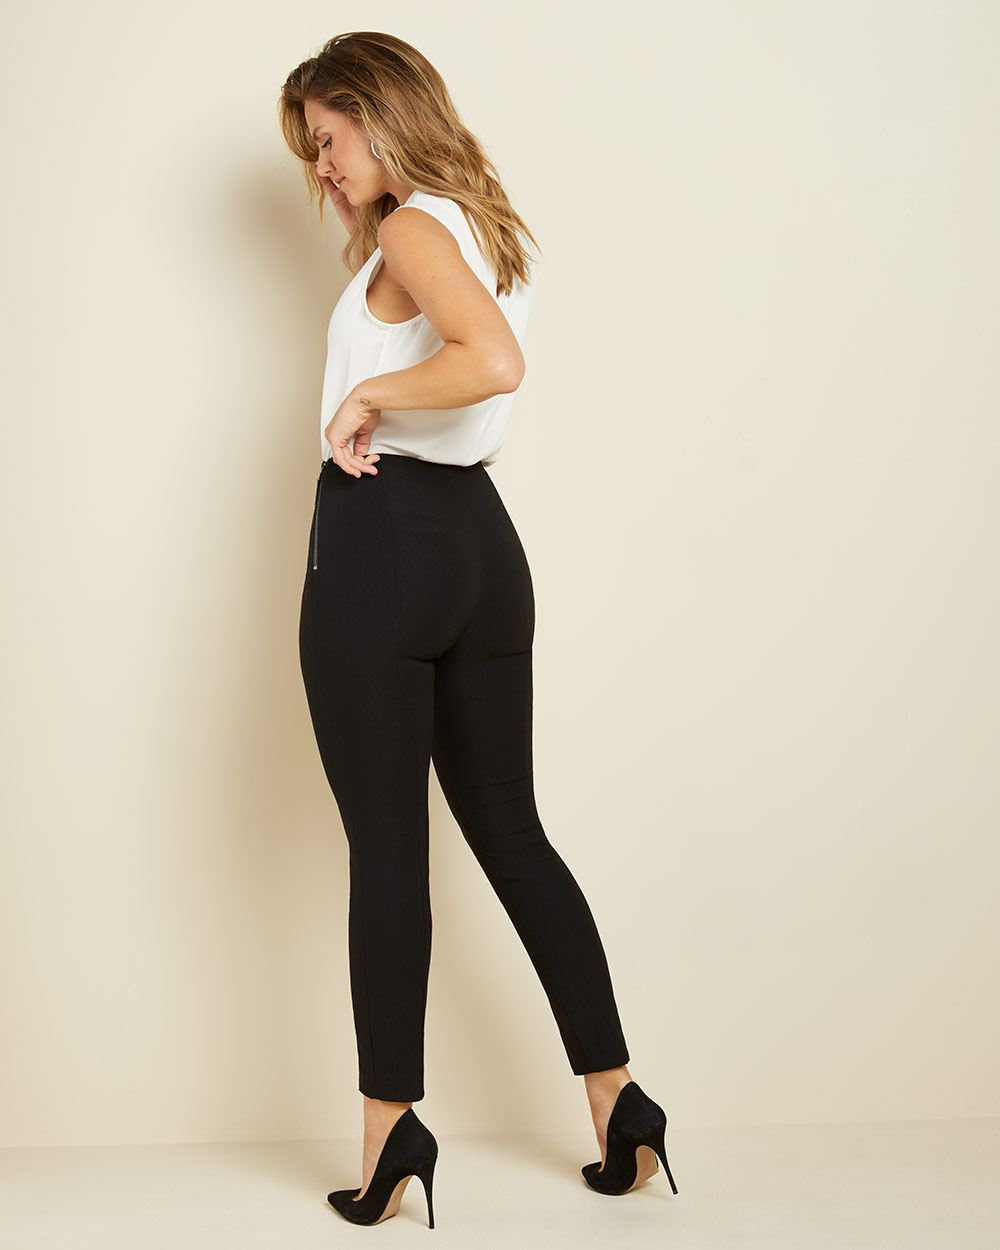 Black high-waist legging pant with split hem